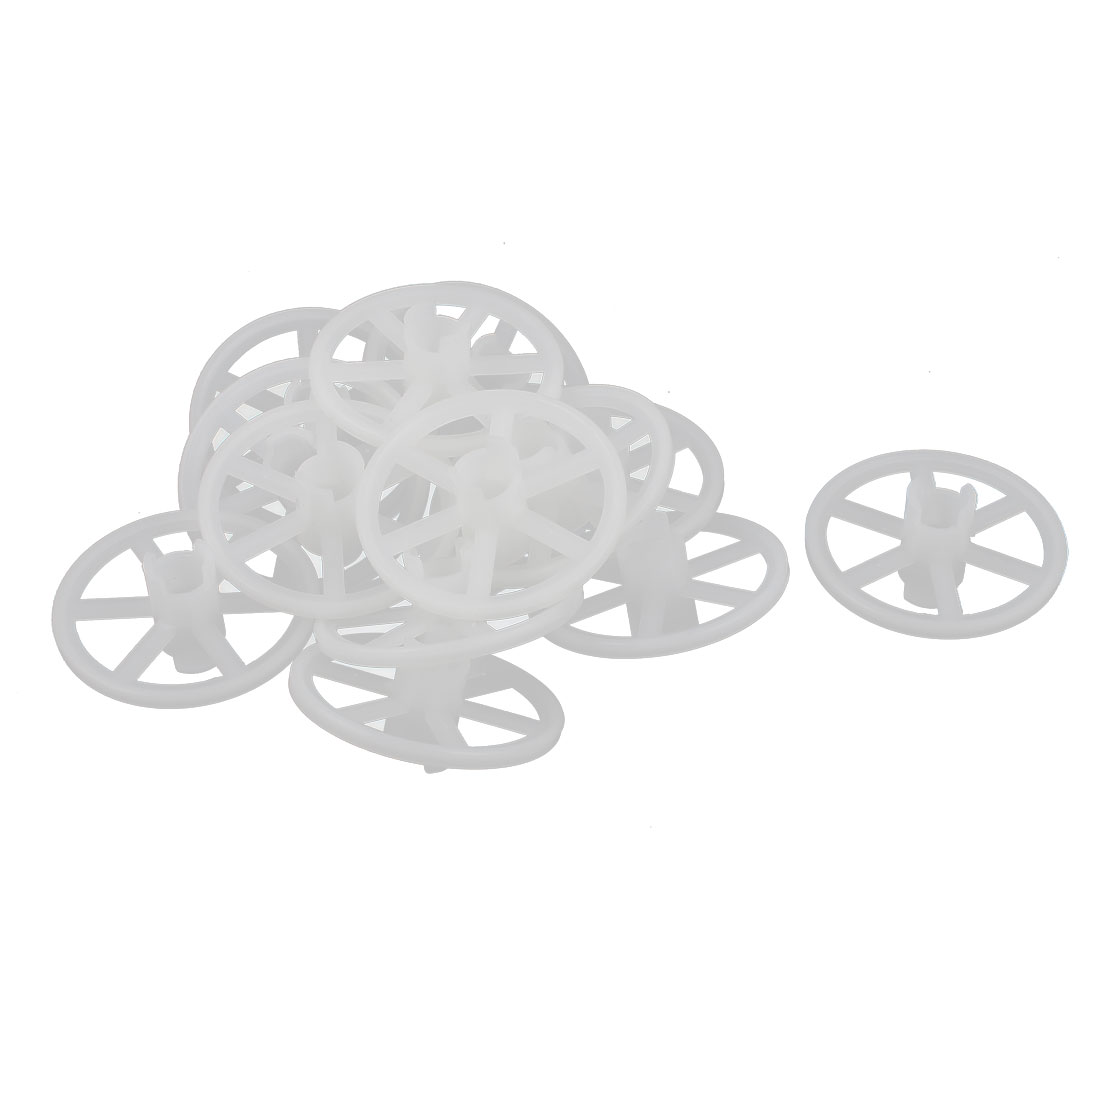 Replacement 10mm x 50mm x 25mm PCB Rubber Coating PP Wheels 13 Pcs